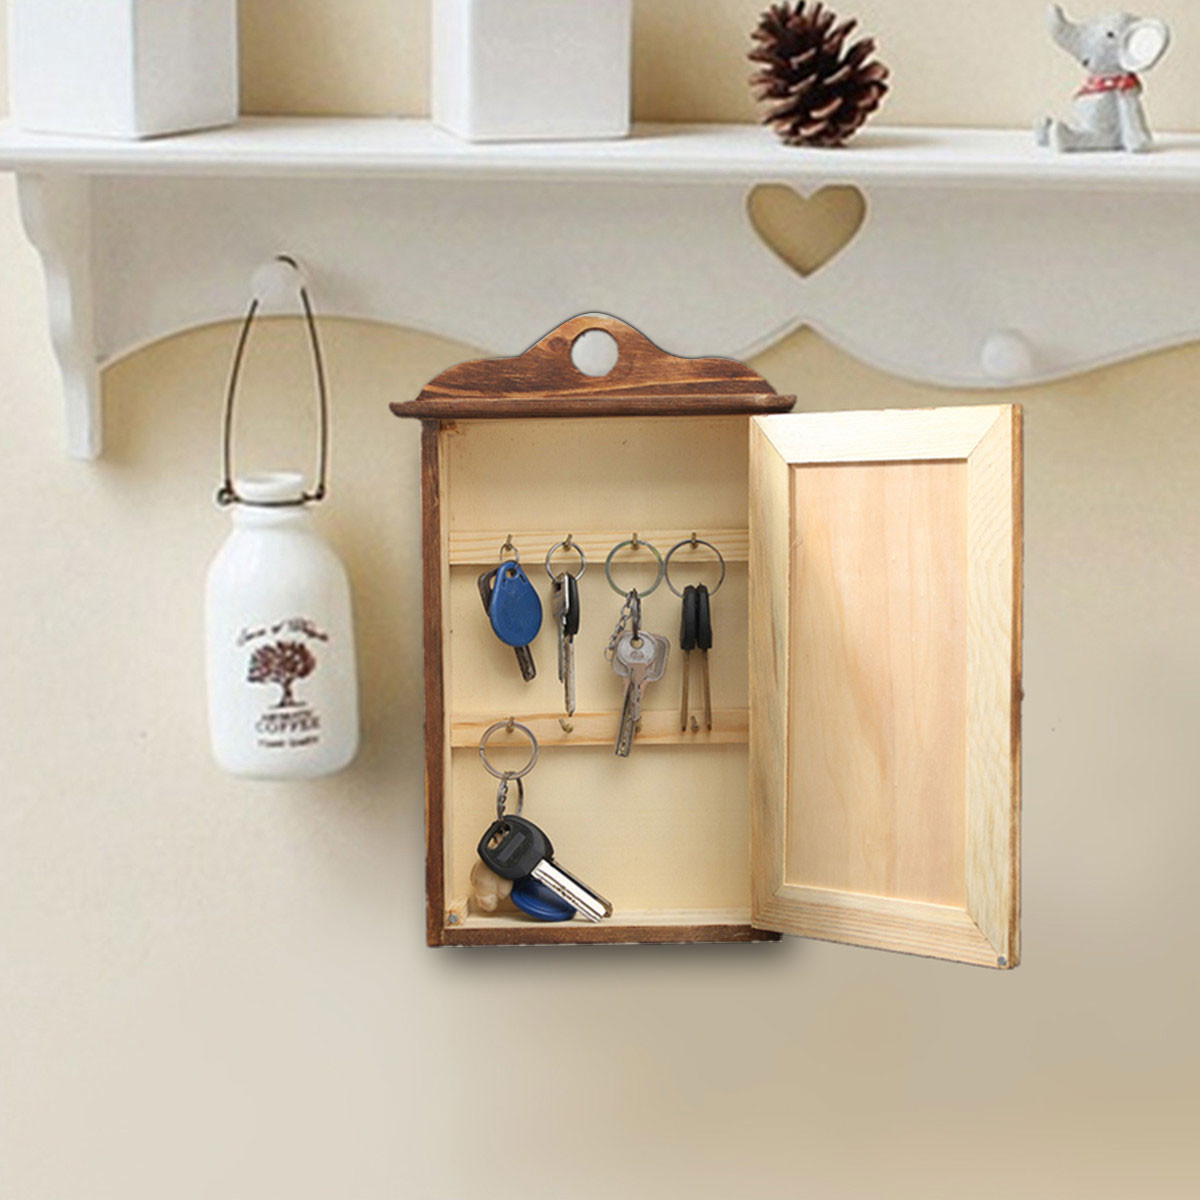 Wall hanging wooden box european retro keys storage with door wall hanging wooden box european retro keys storage with door accessories storage wall shelf fashion home decoration in storage boxes bins from home amipublicfo Images